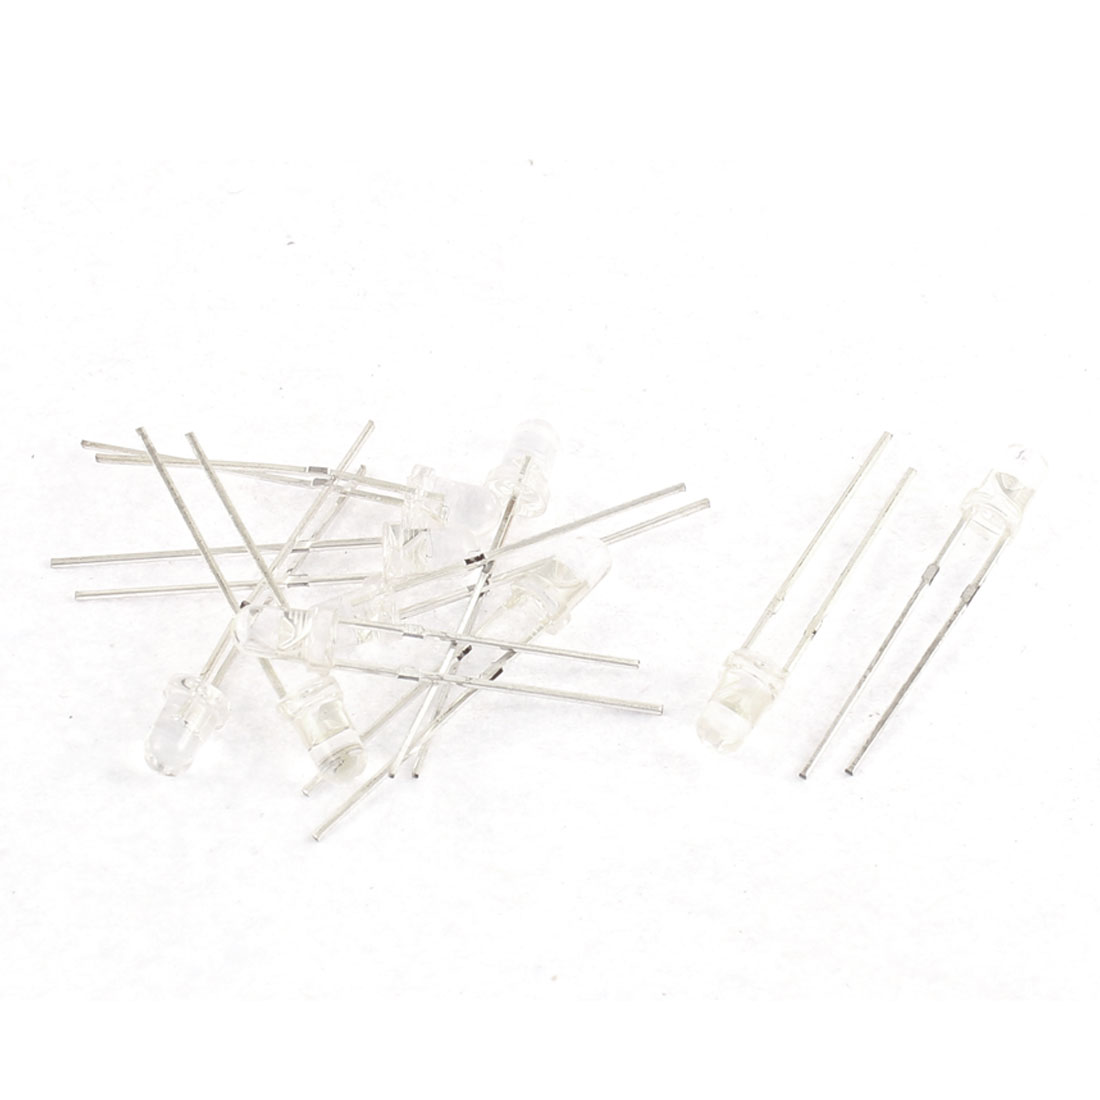 10pcs 3mm 2 Terminals White Yellow Light Emitting Diode DIY LEDs Bulds